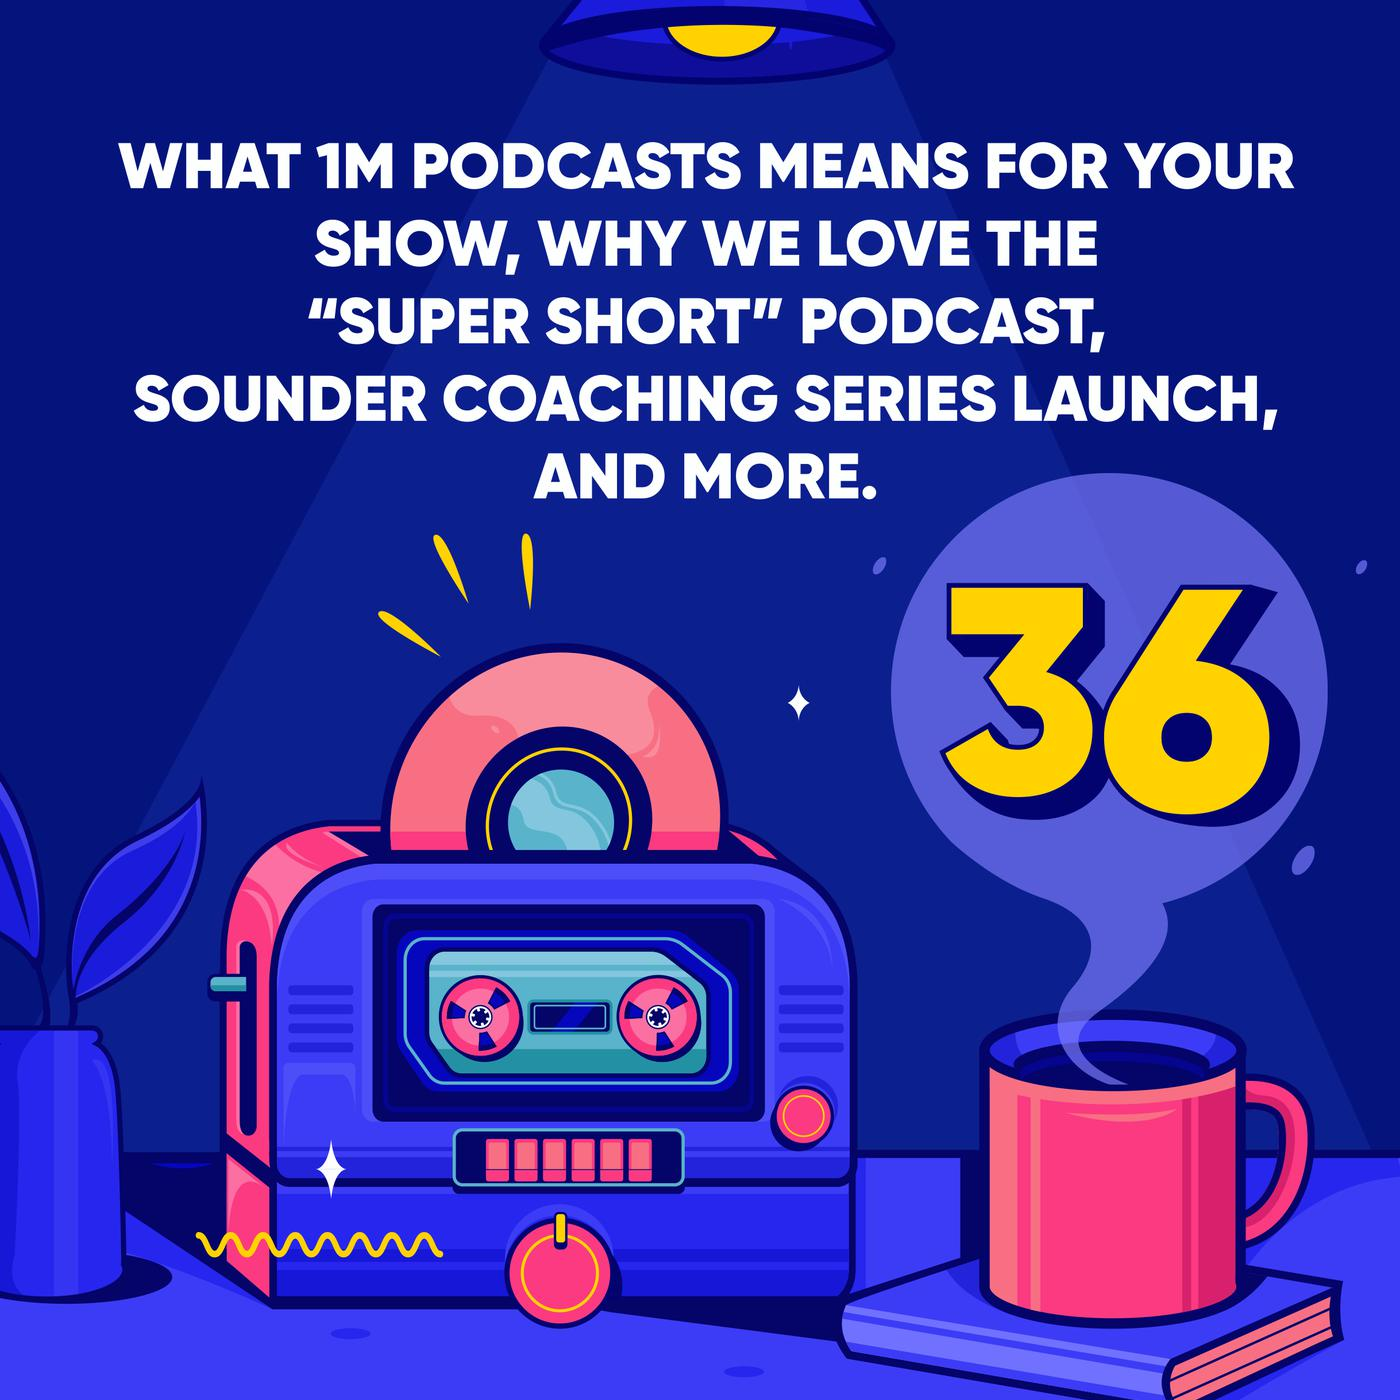 """1M Podcasts Means for your Show, why we love the """"Super Short"""" Podcast, Sounder Coaching Series Launch, and More."""